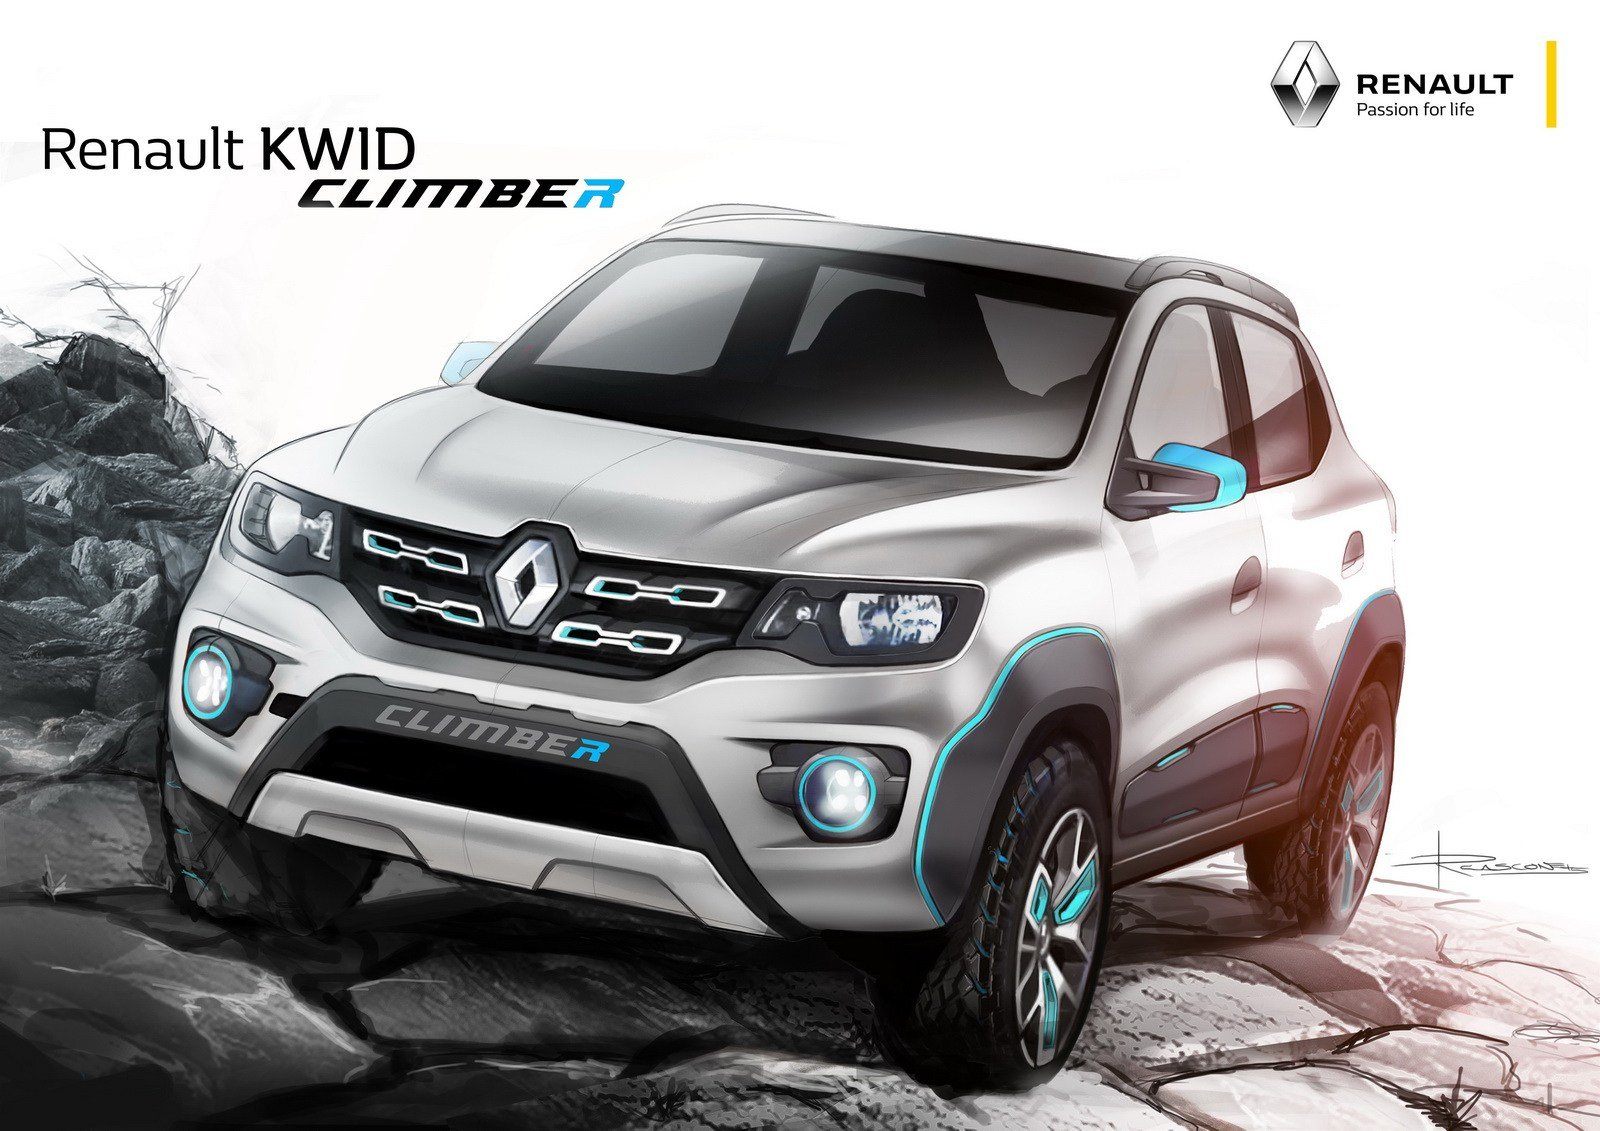 Latest Renault Kwid Climber Launched In India Prices Starts From Rs 4 30 Lakh Storynotch Free Download